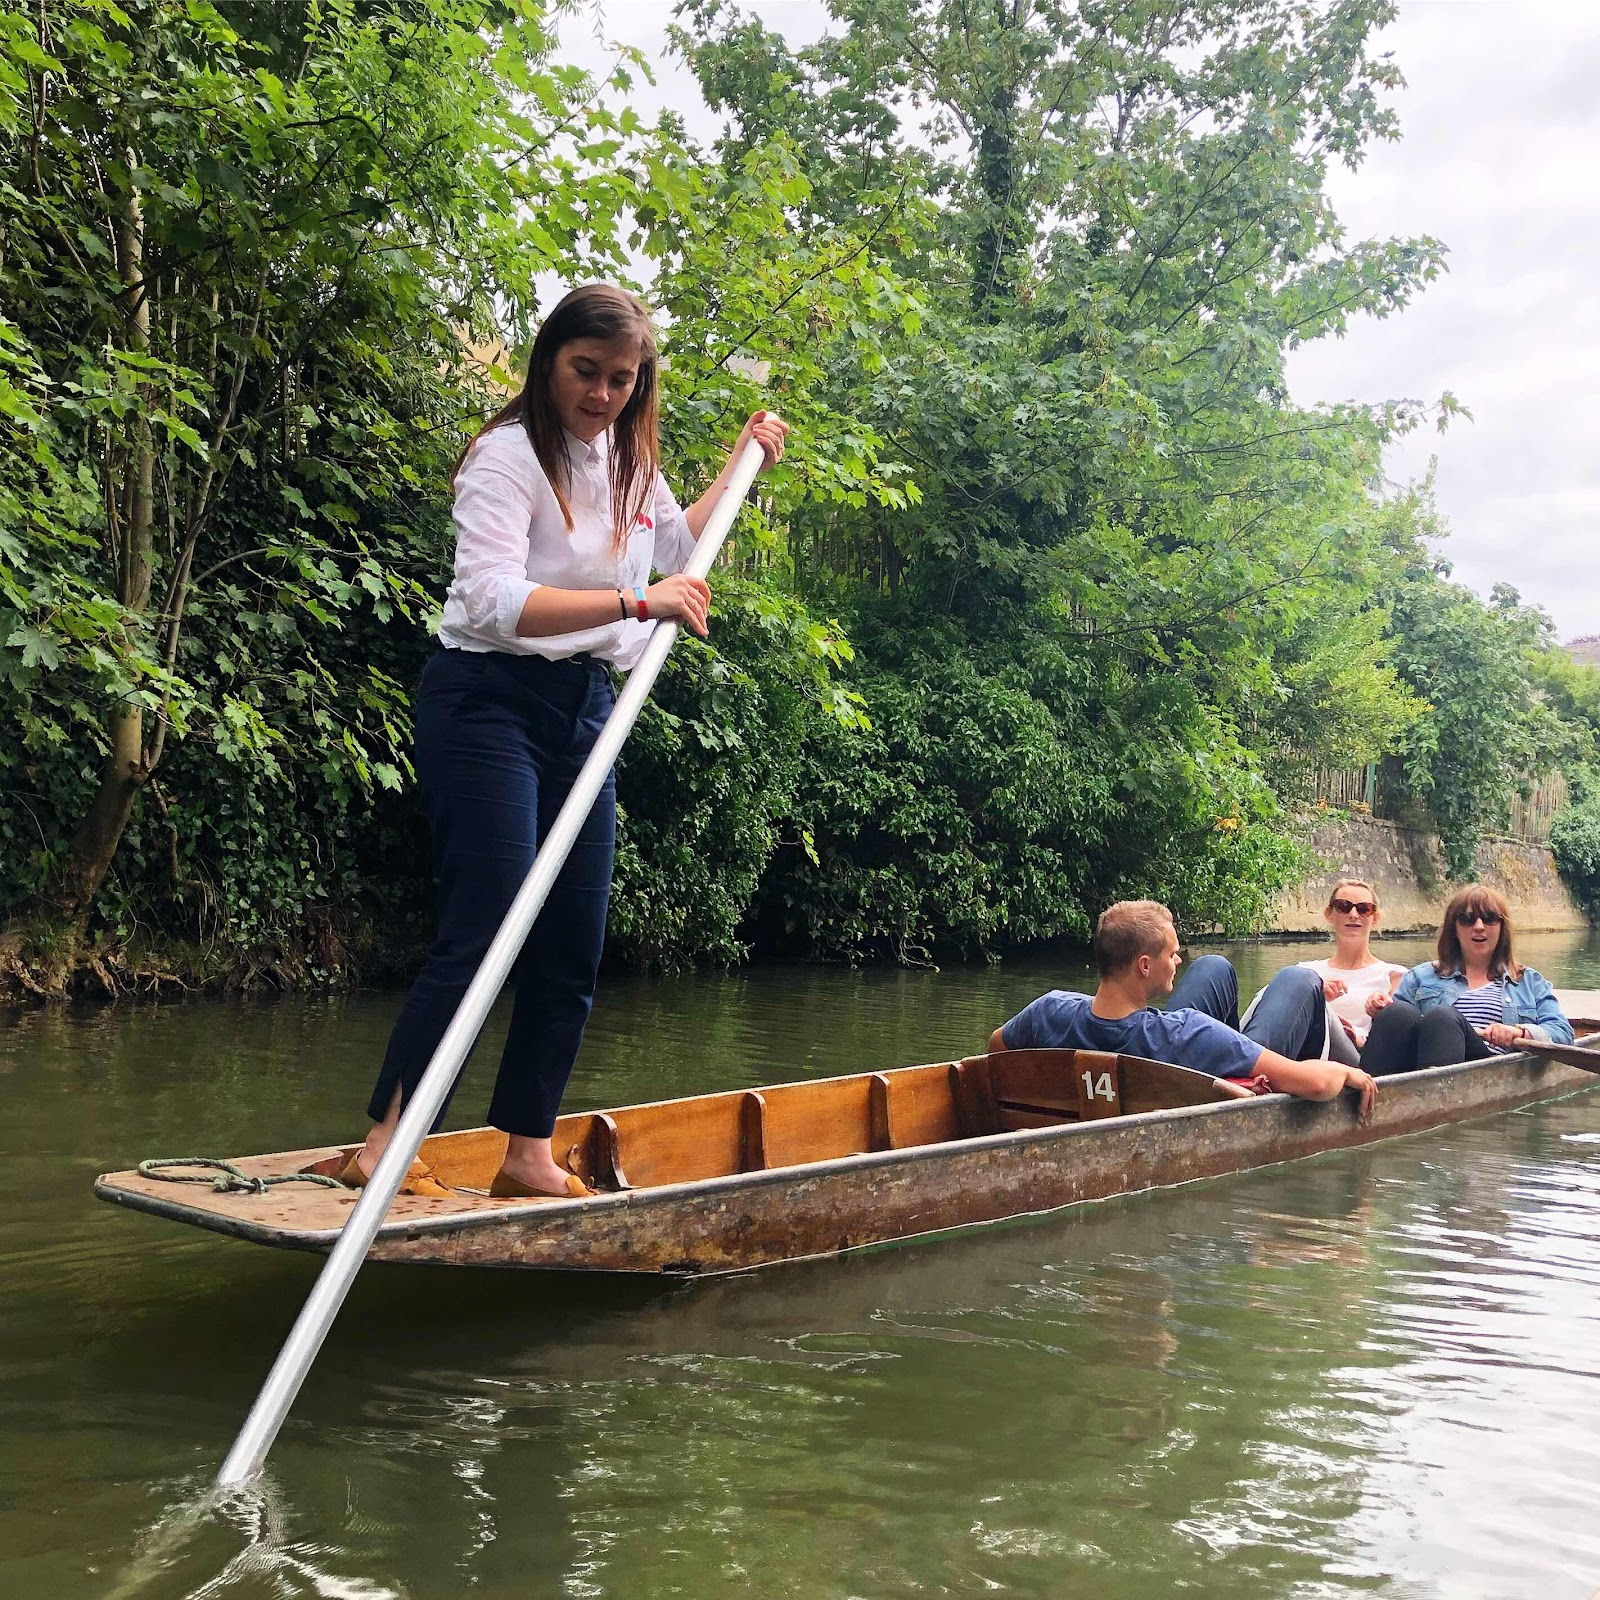 london-lifestyle-blog-48-hours-in-oxford-punting